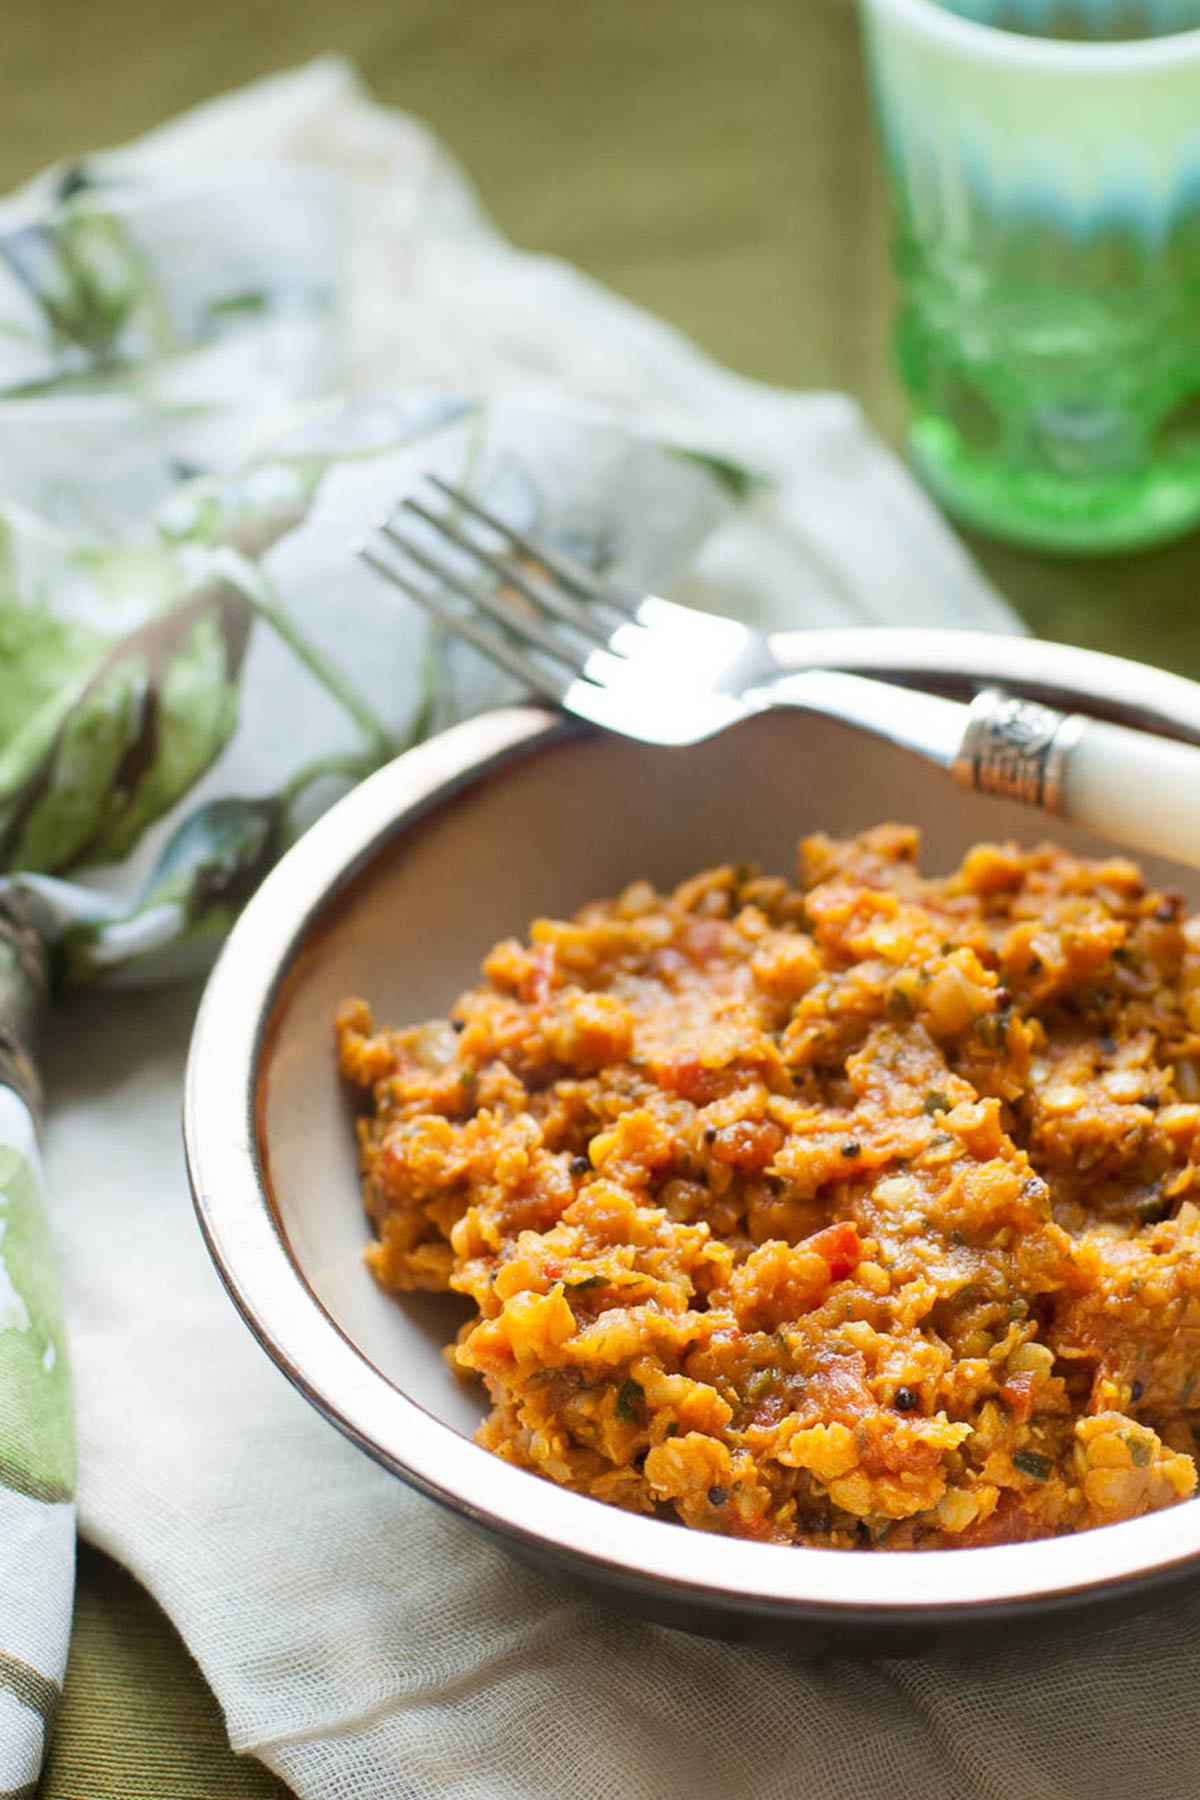 Cooked red lentils in a bowl